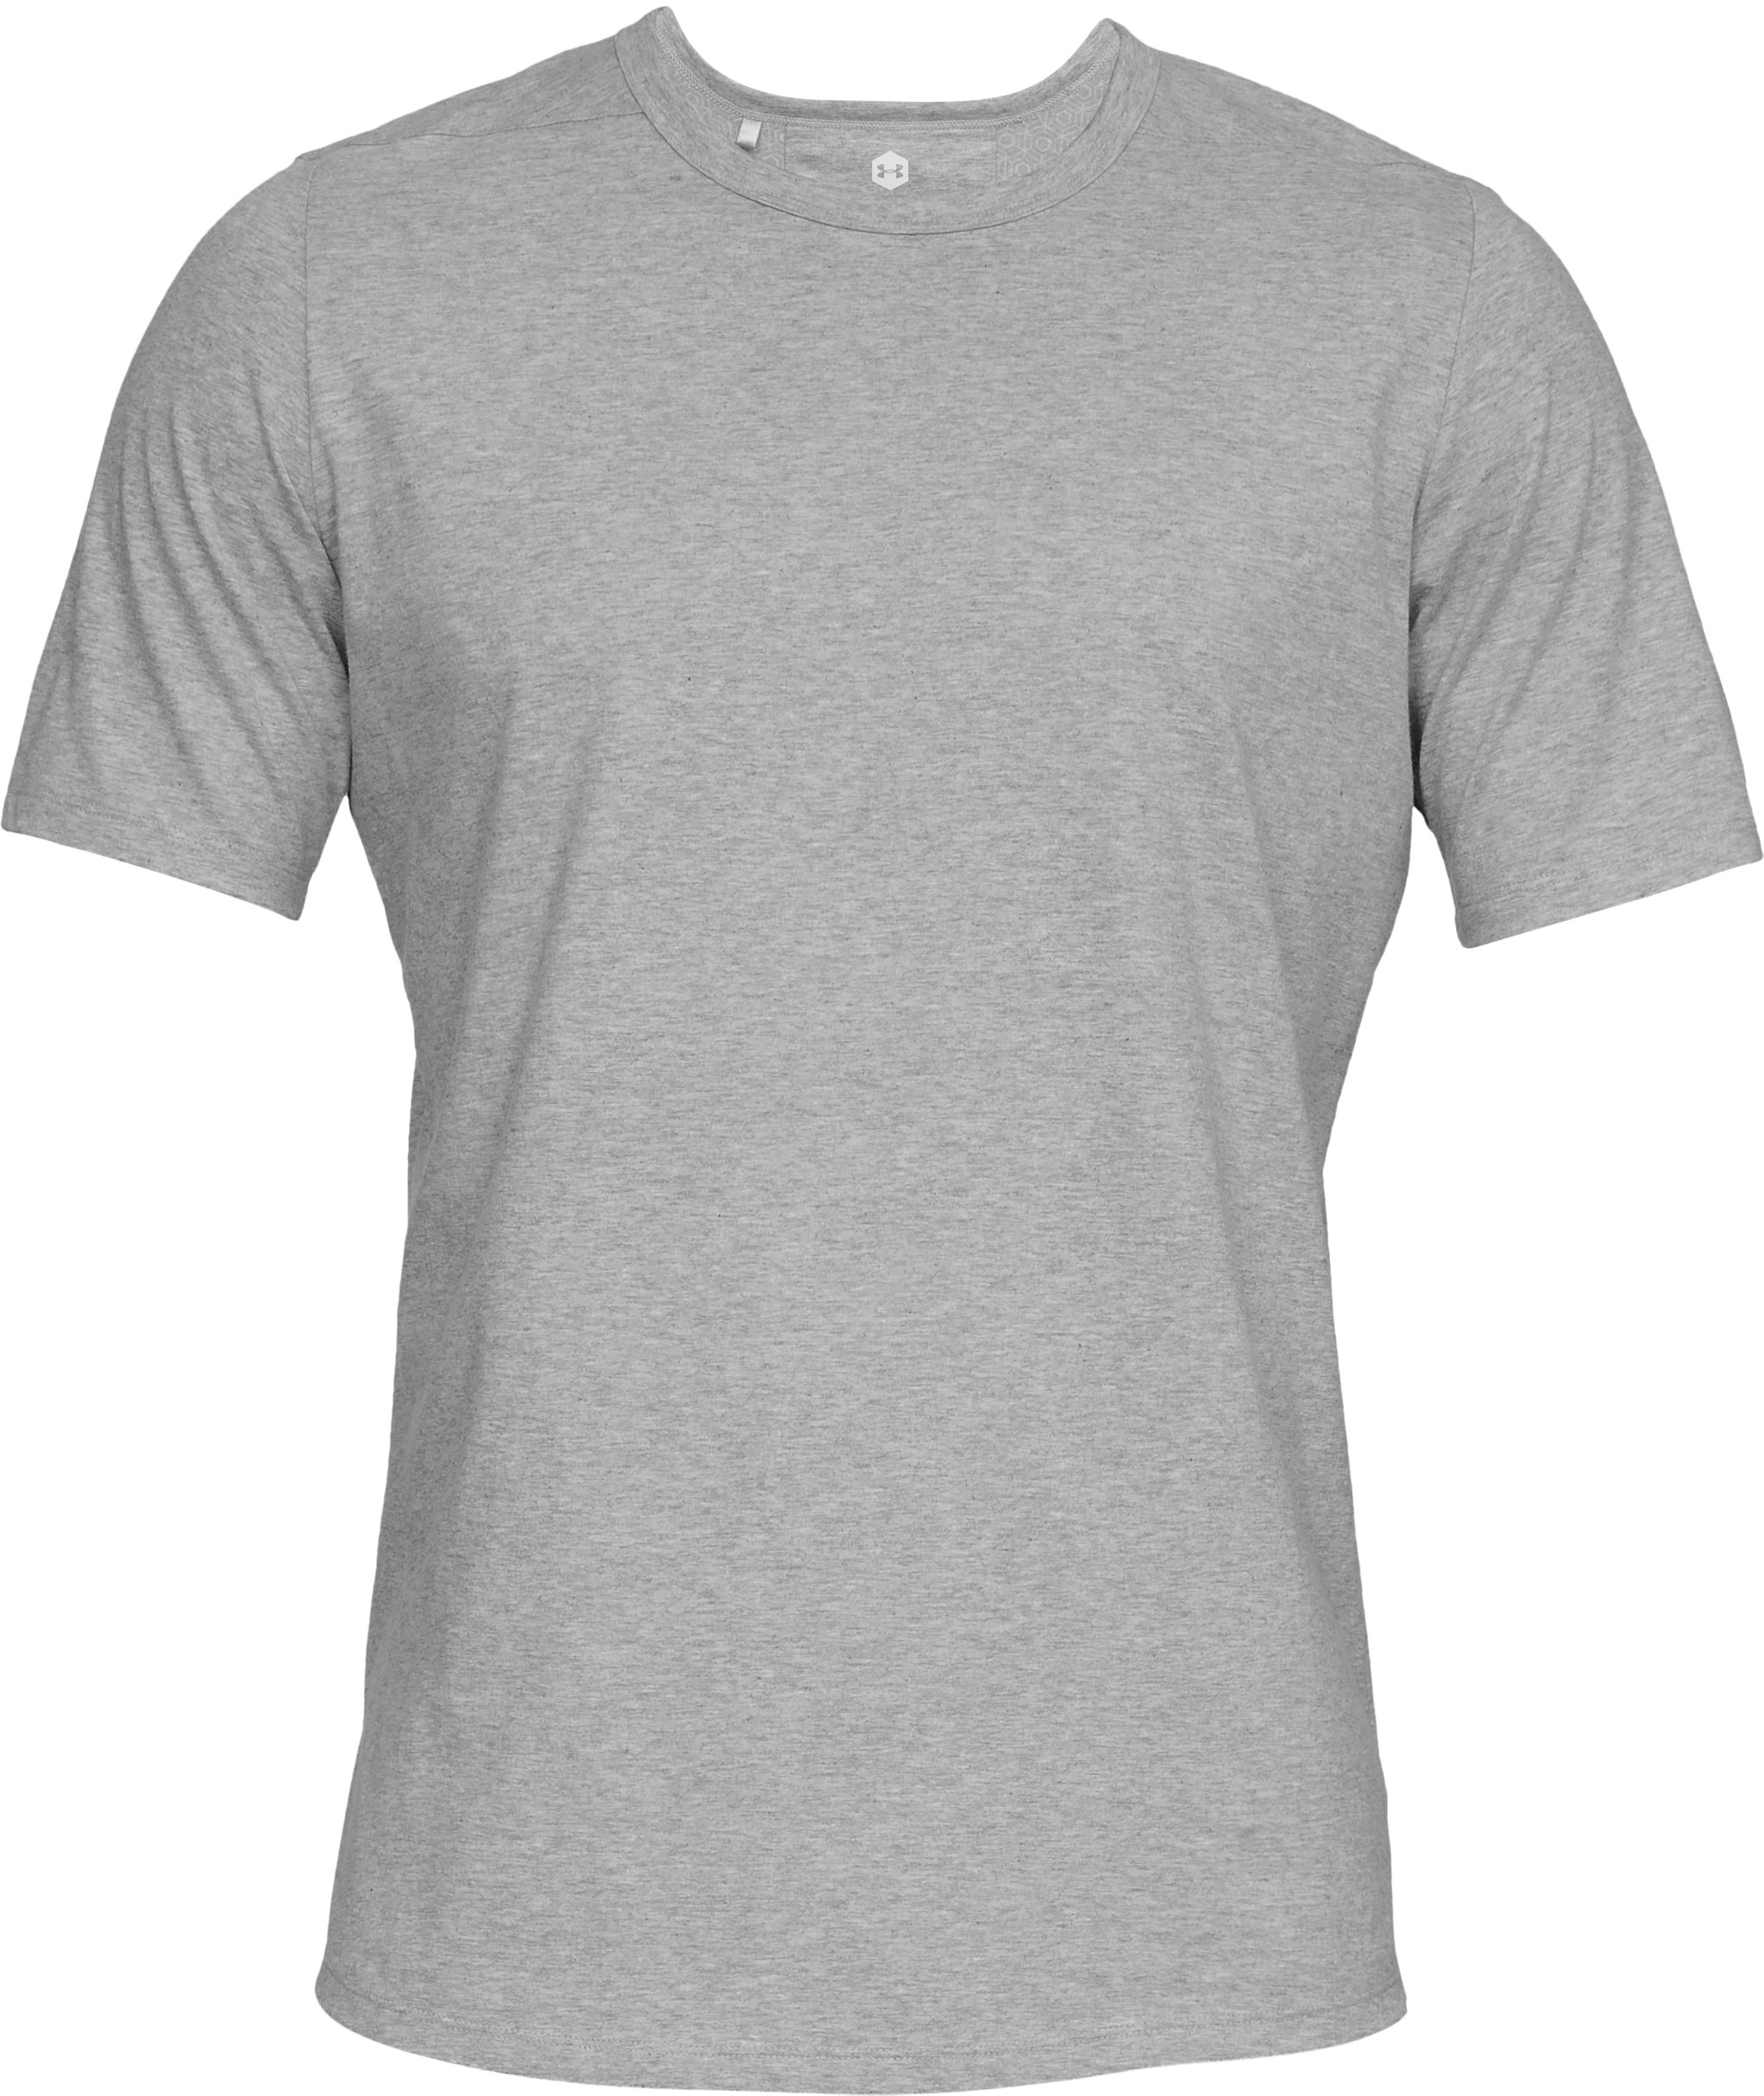 Men's Athlete Recovery T-Shirt, Performance Gray,